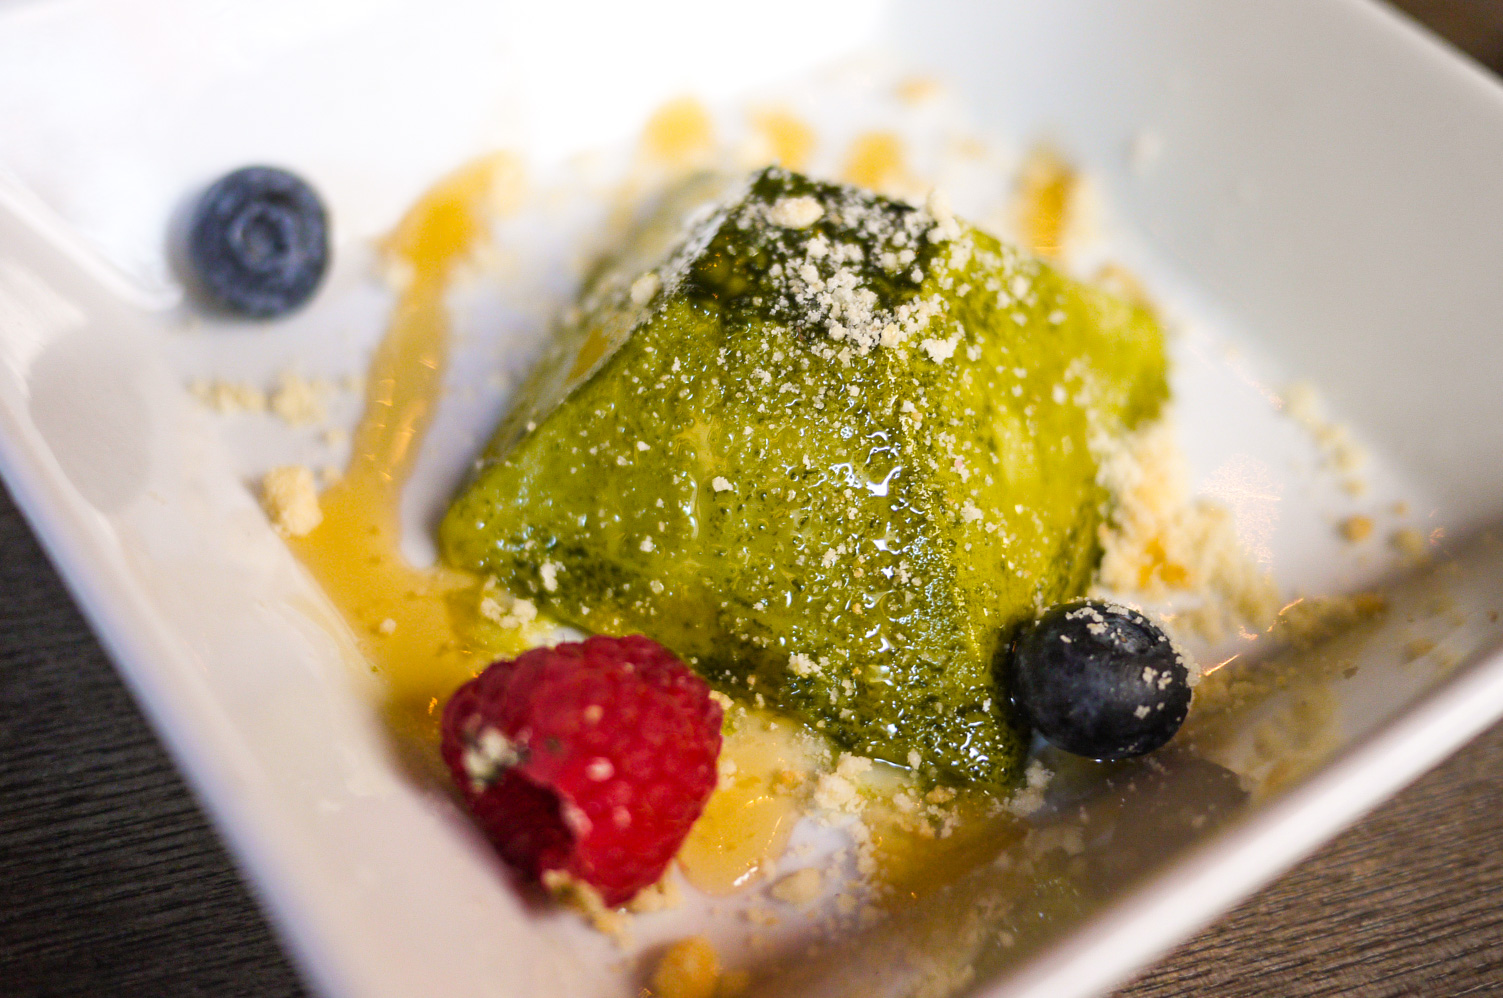 Green Tea Mousse, same thing as before but this one's a bit sweeter. The dessert selection is more towards a disappointment but I guess that's not what people are coming here for. They come here for a good meal, amazing drink options and just have fun hanging out with friends.